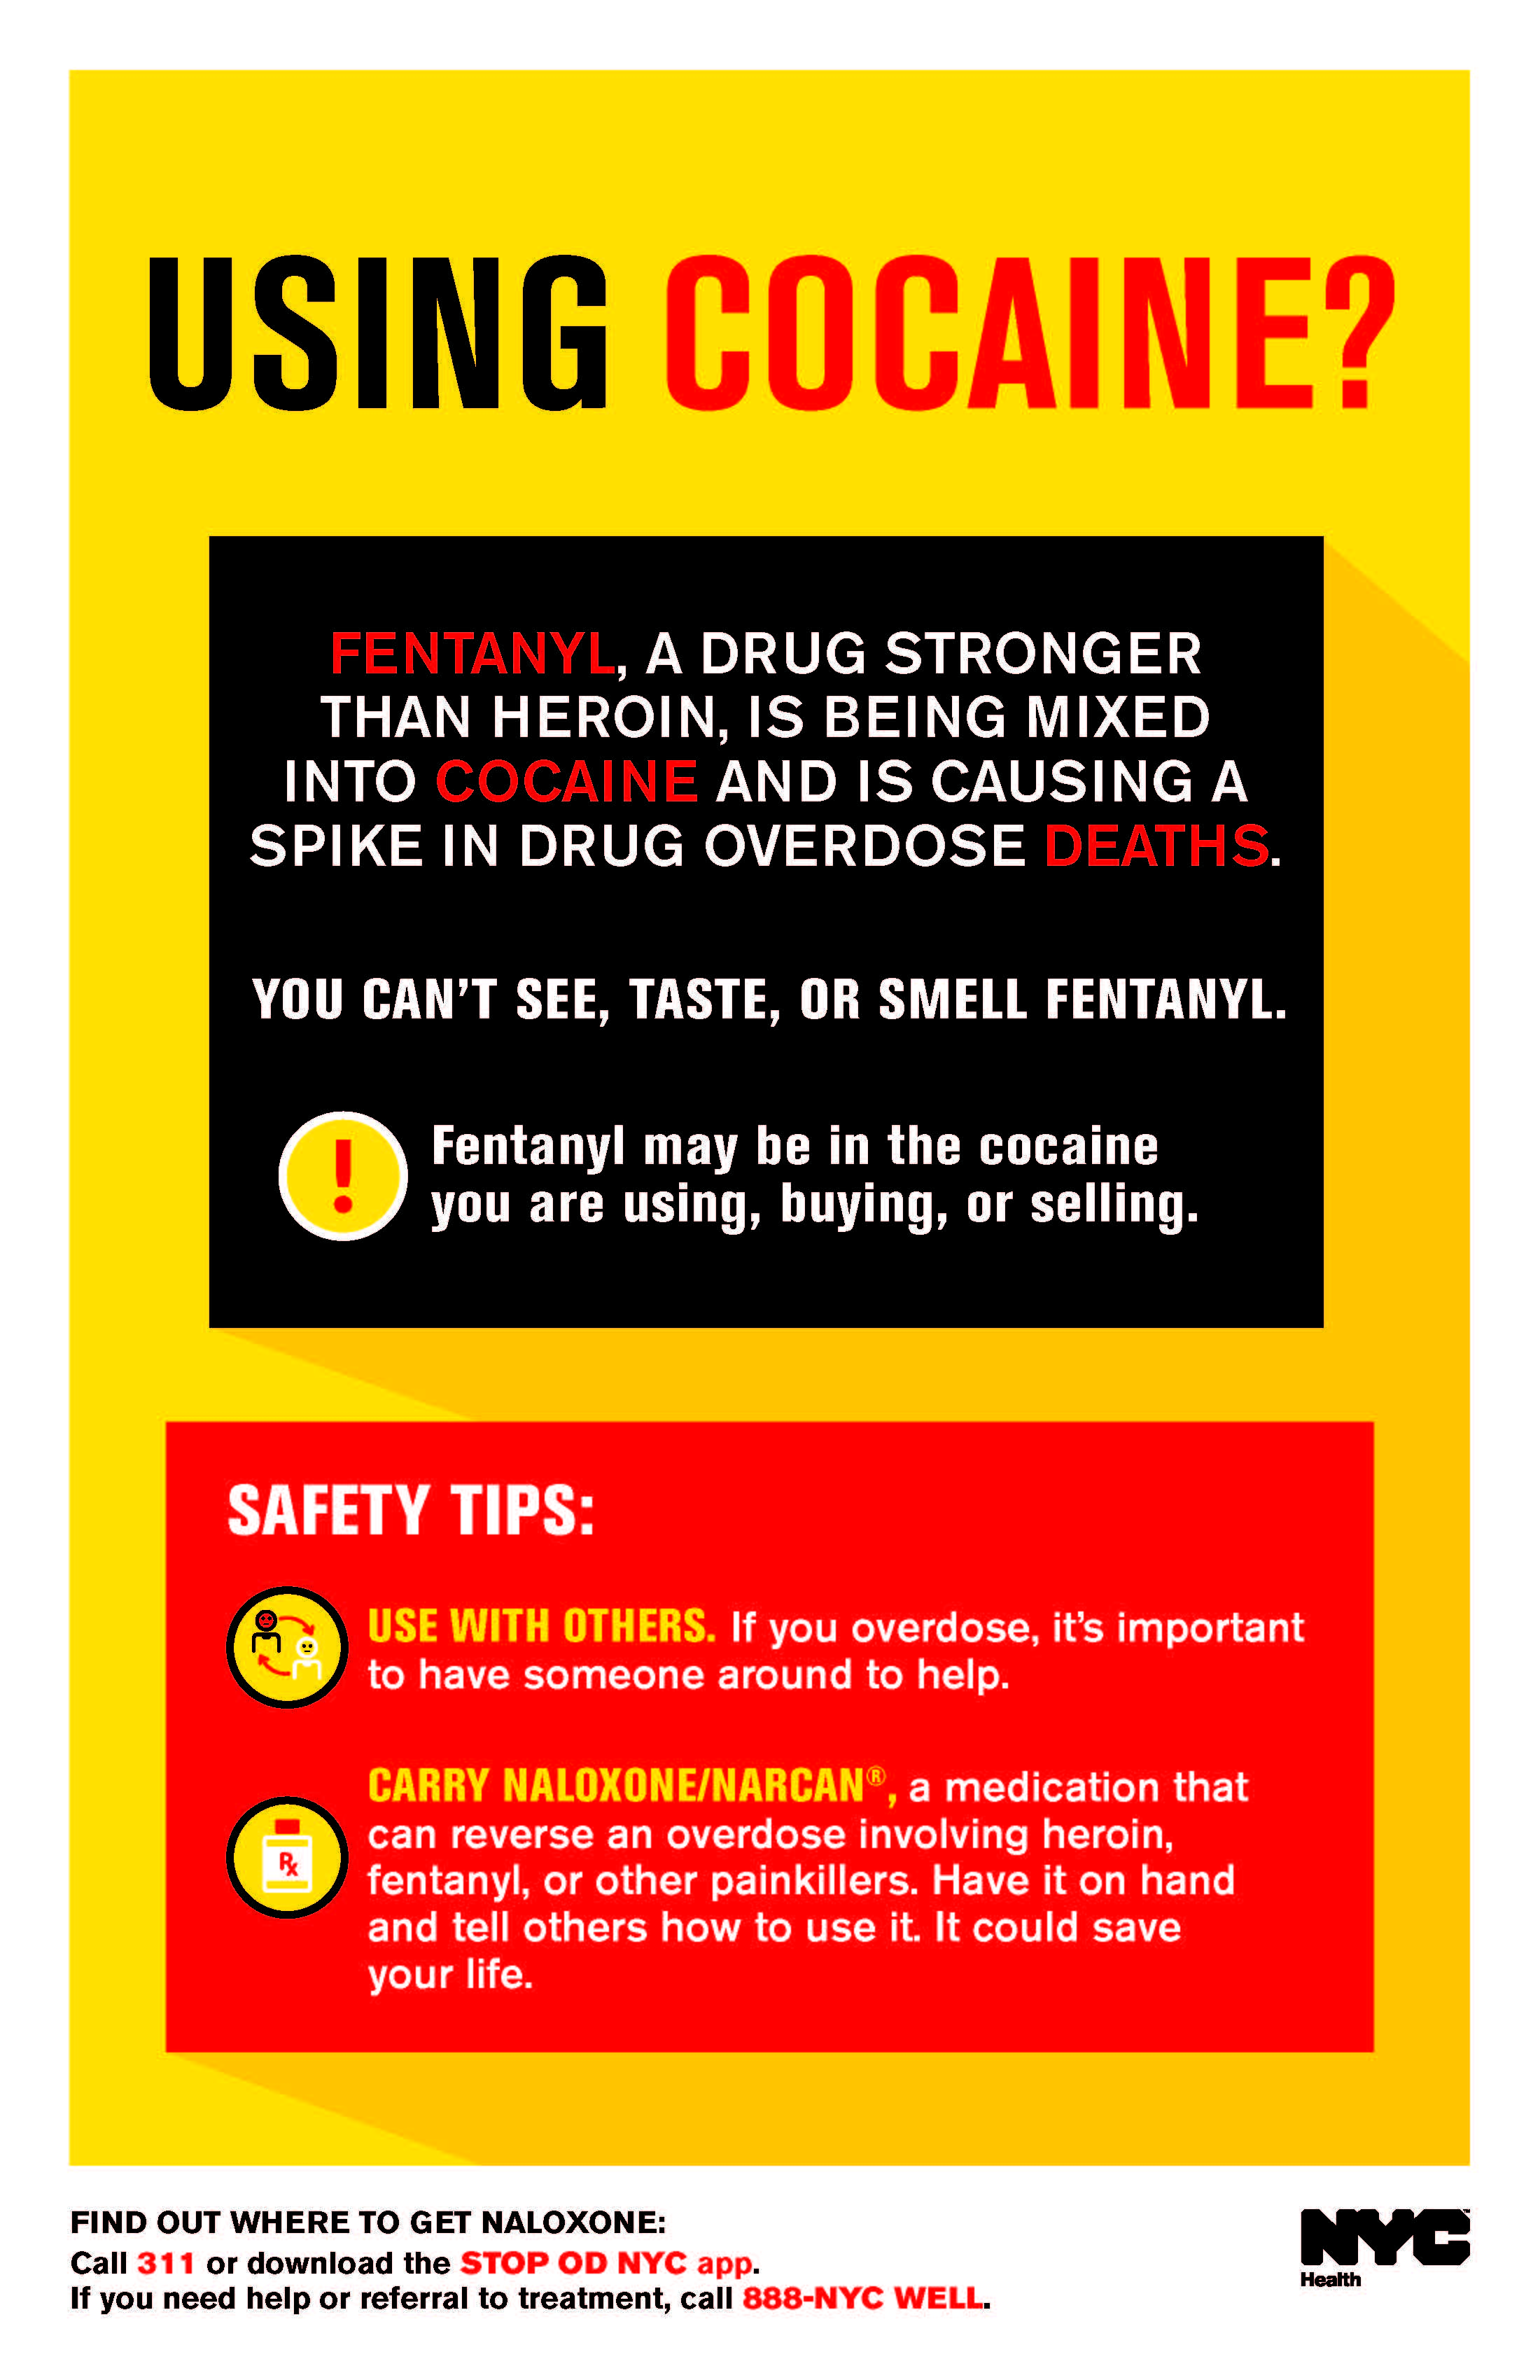 A poster titled Using Cocaine Tonight? It provides information about fentanyl, including that it can be added to cocaine without the user knowing. It also provides safety tips for cocaine users.